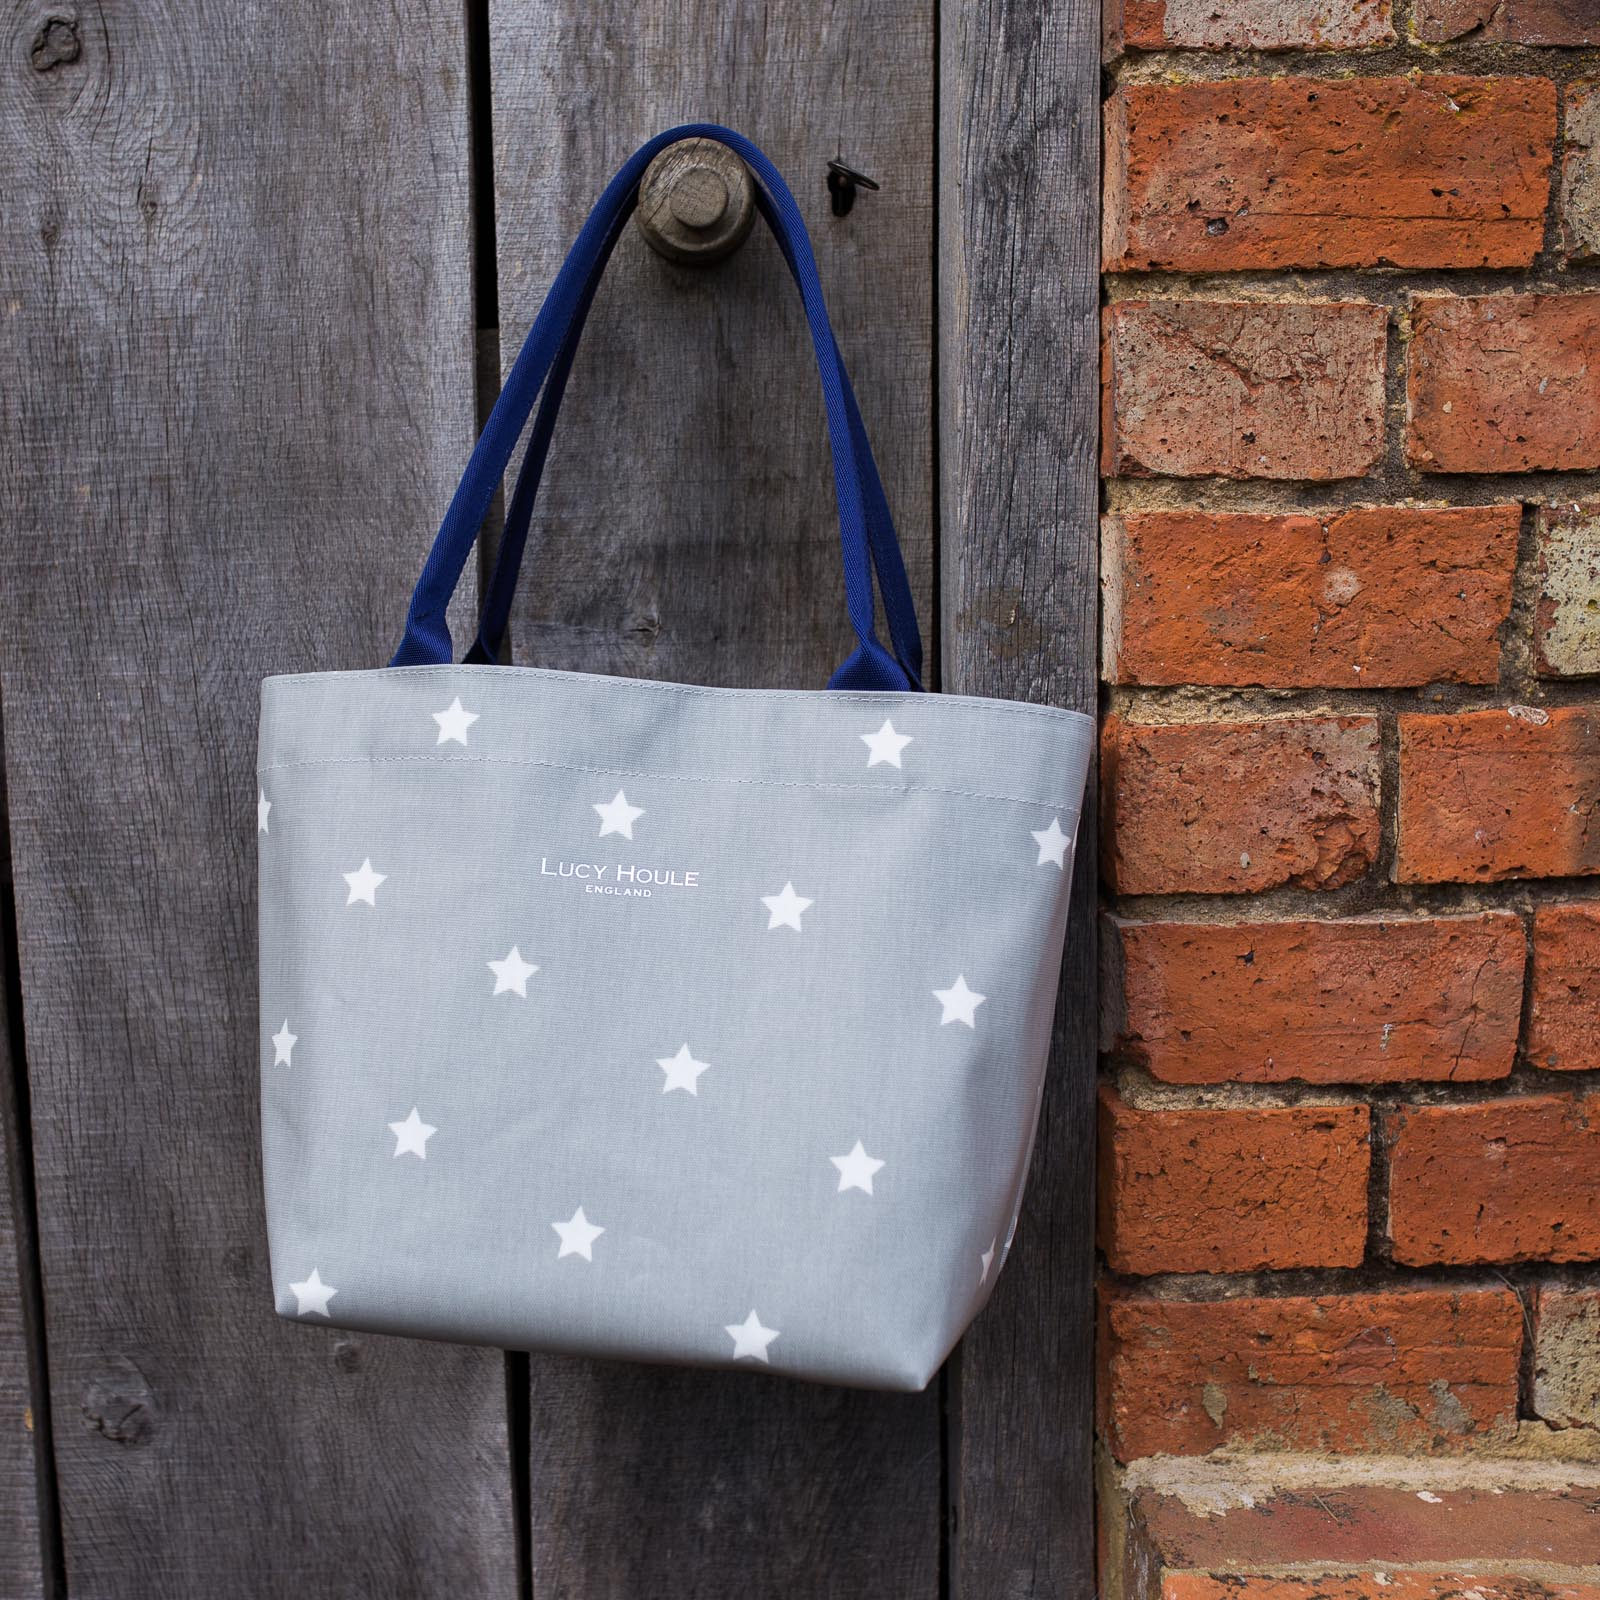 Grey & White Star Small Tote Bag with Navy Handles